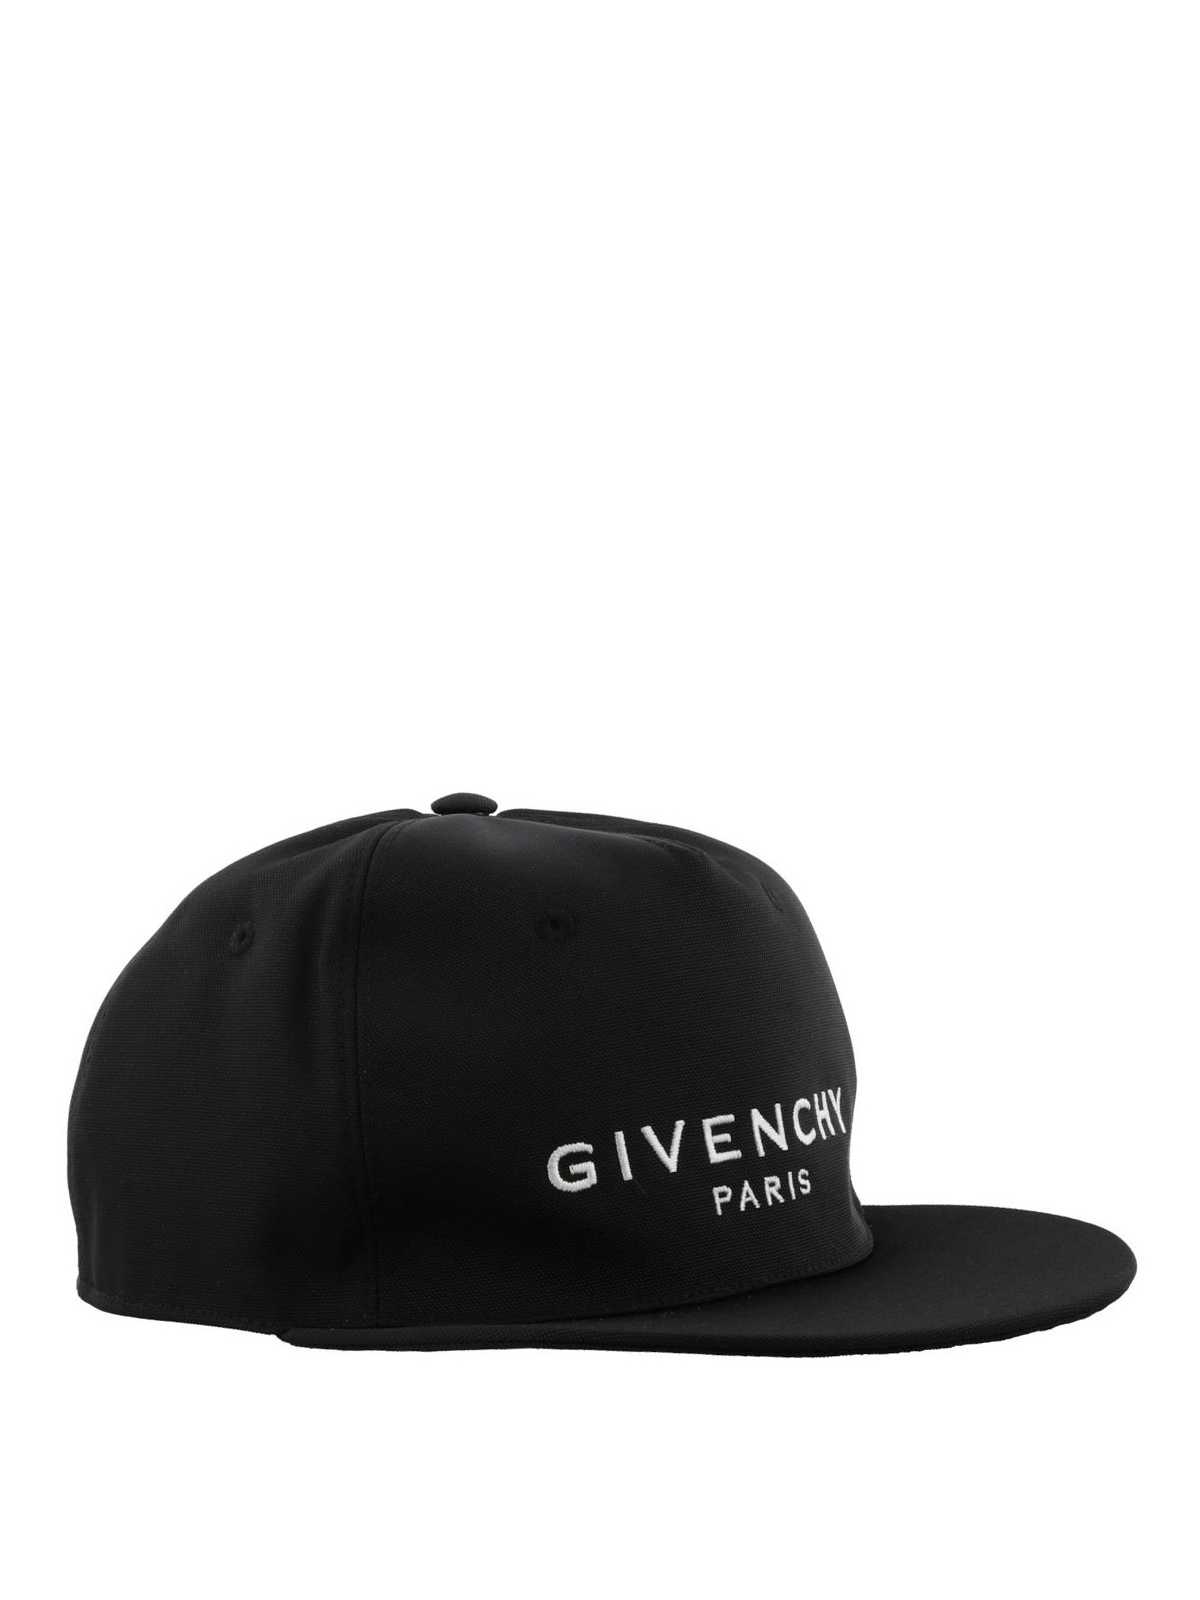 4484d071f1a iKRIX GIVENCHY  hats   caps - Givenchy Paris embroidery cotton baseball cap